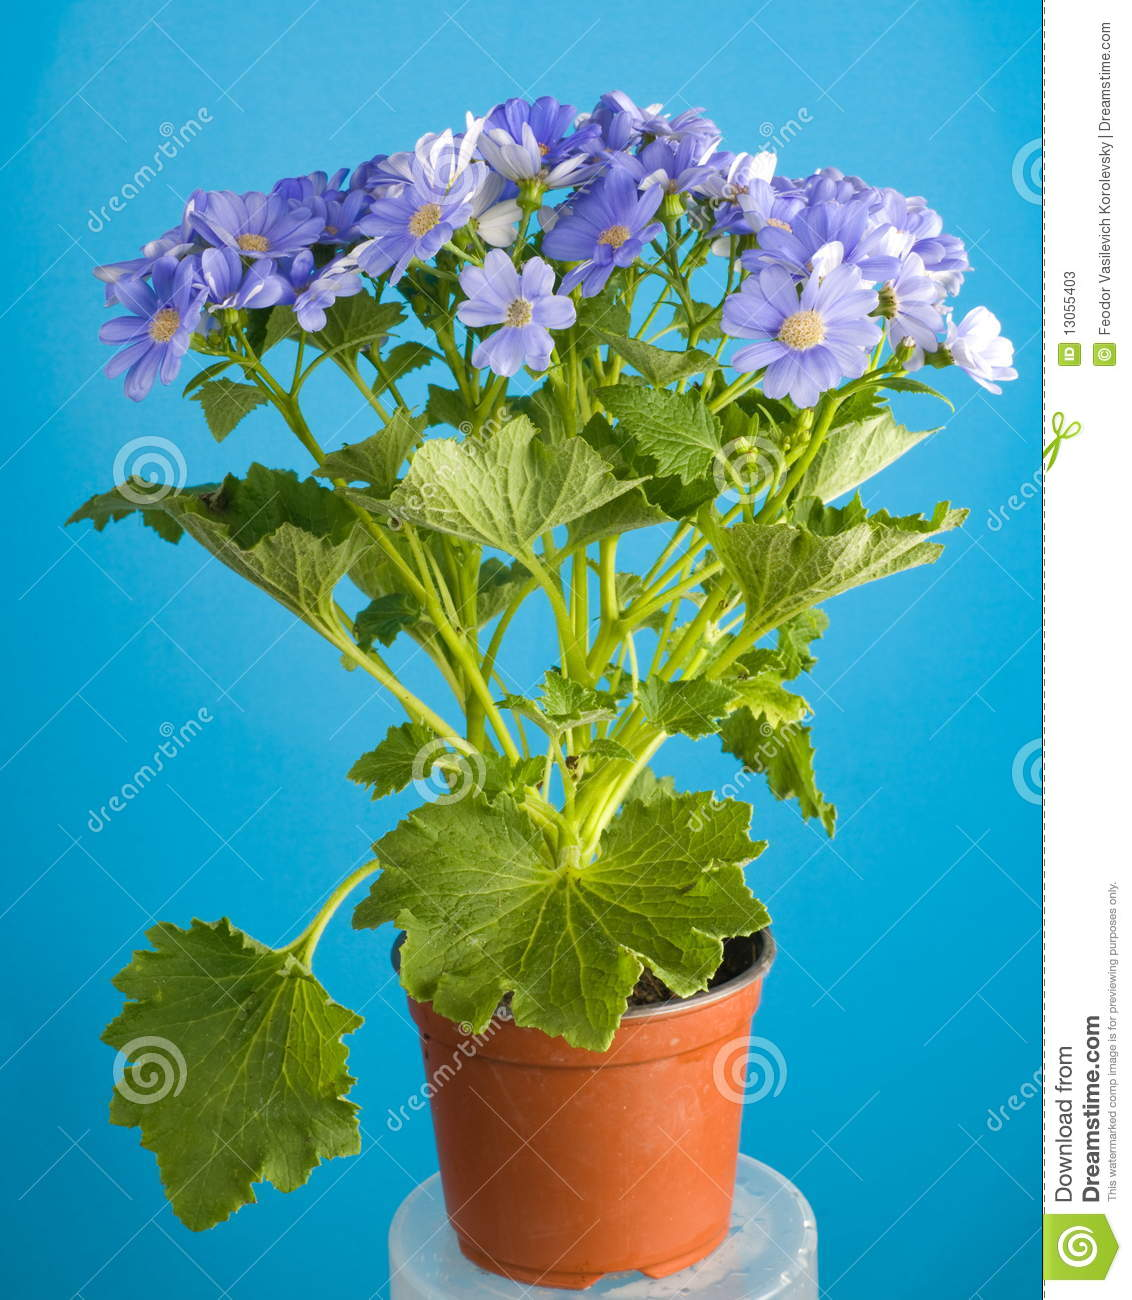 Flower From A Hothouse Stock s Image